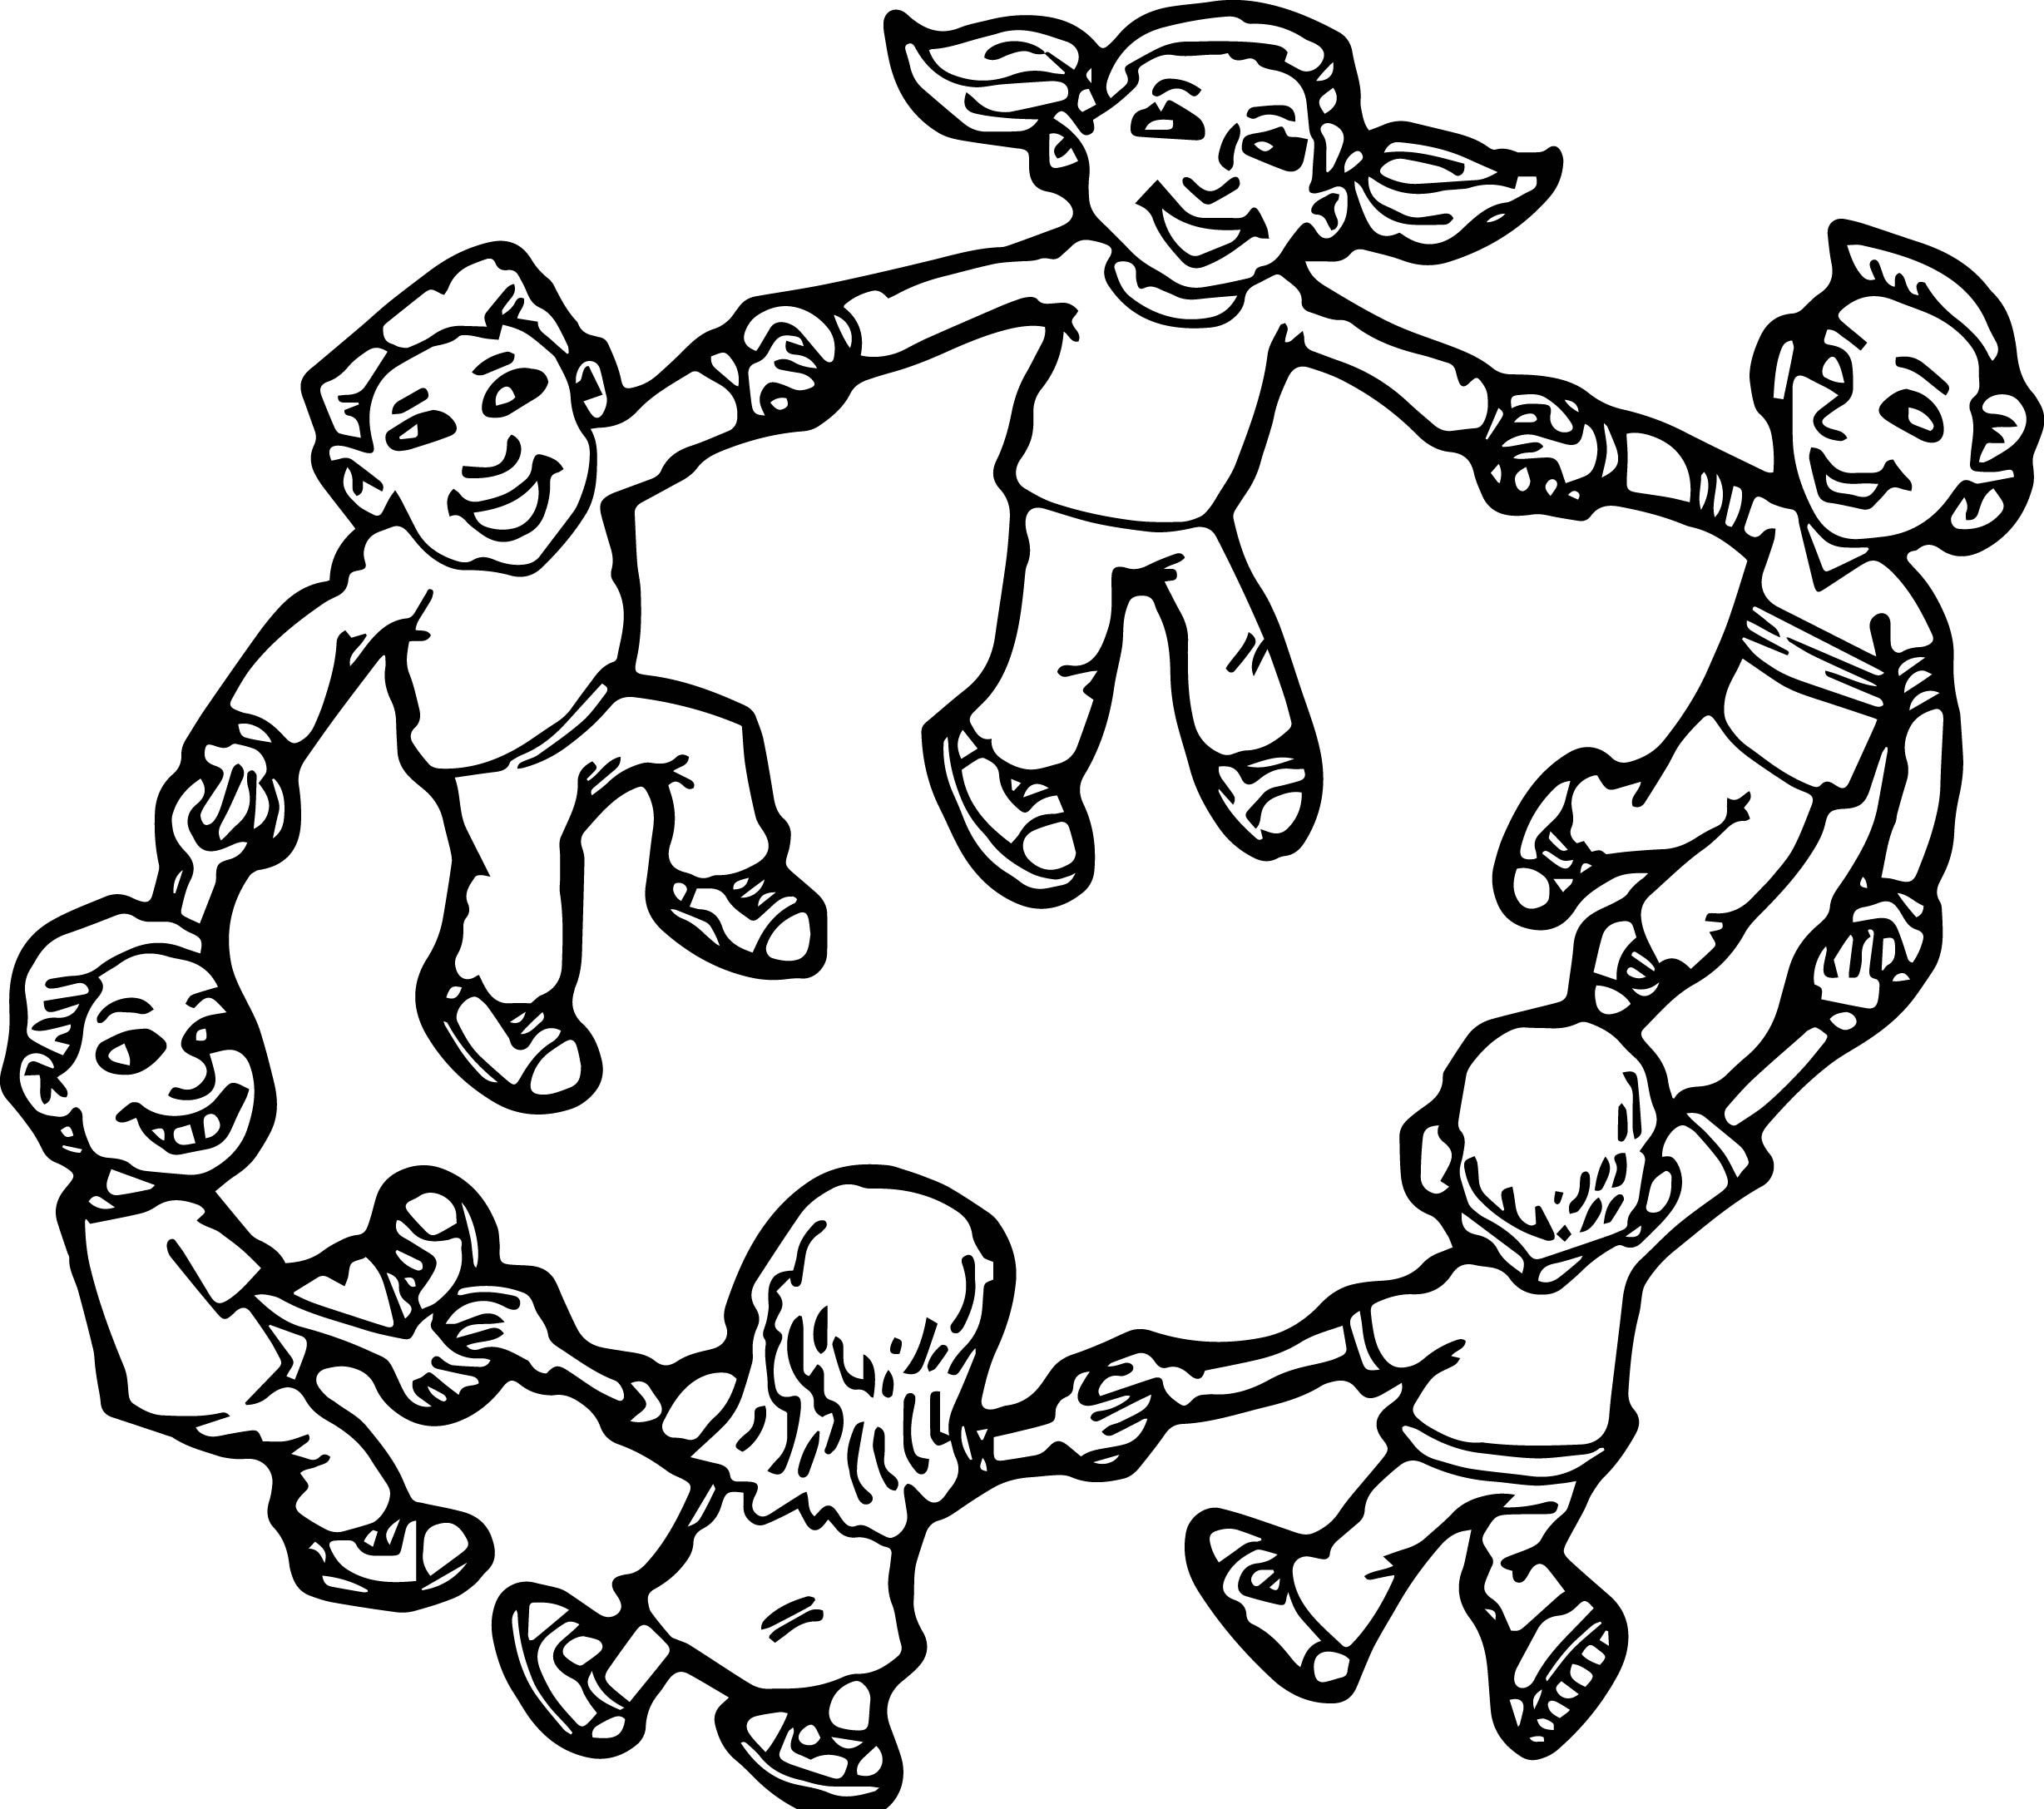 Cool Children Playing Children Coloring Page